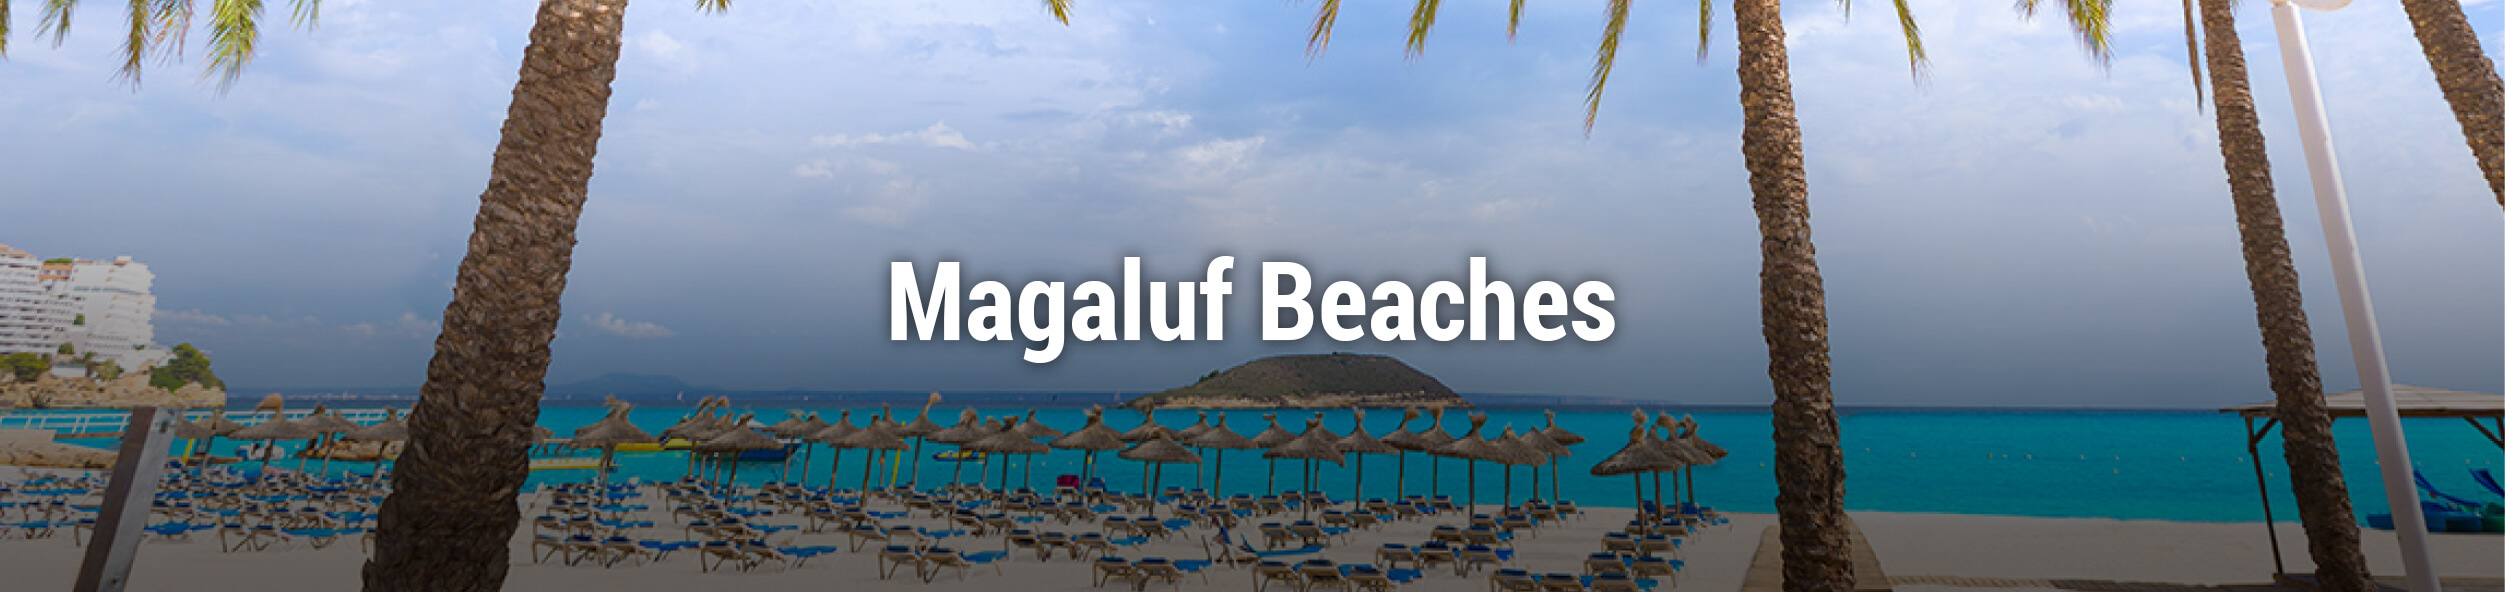 magaluf beaches